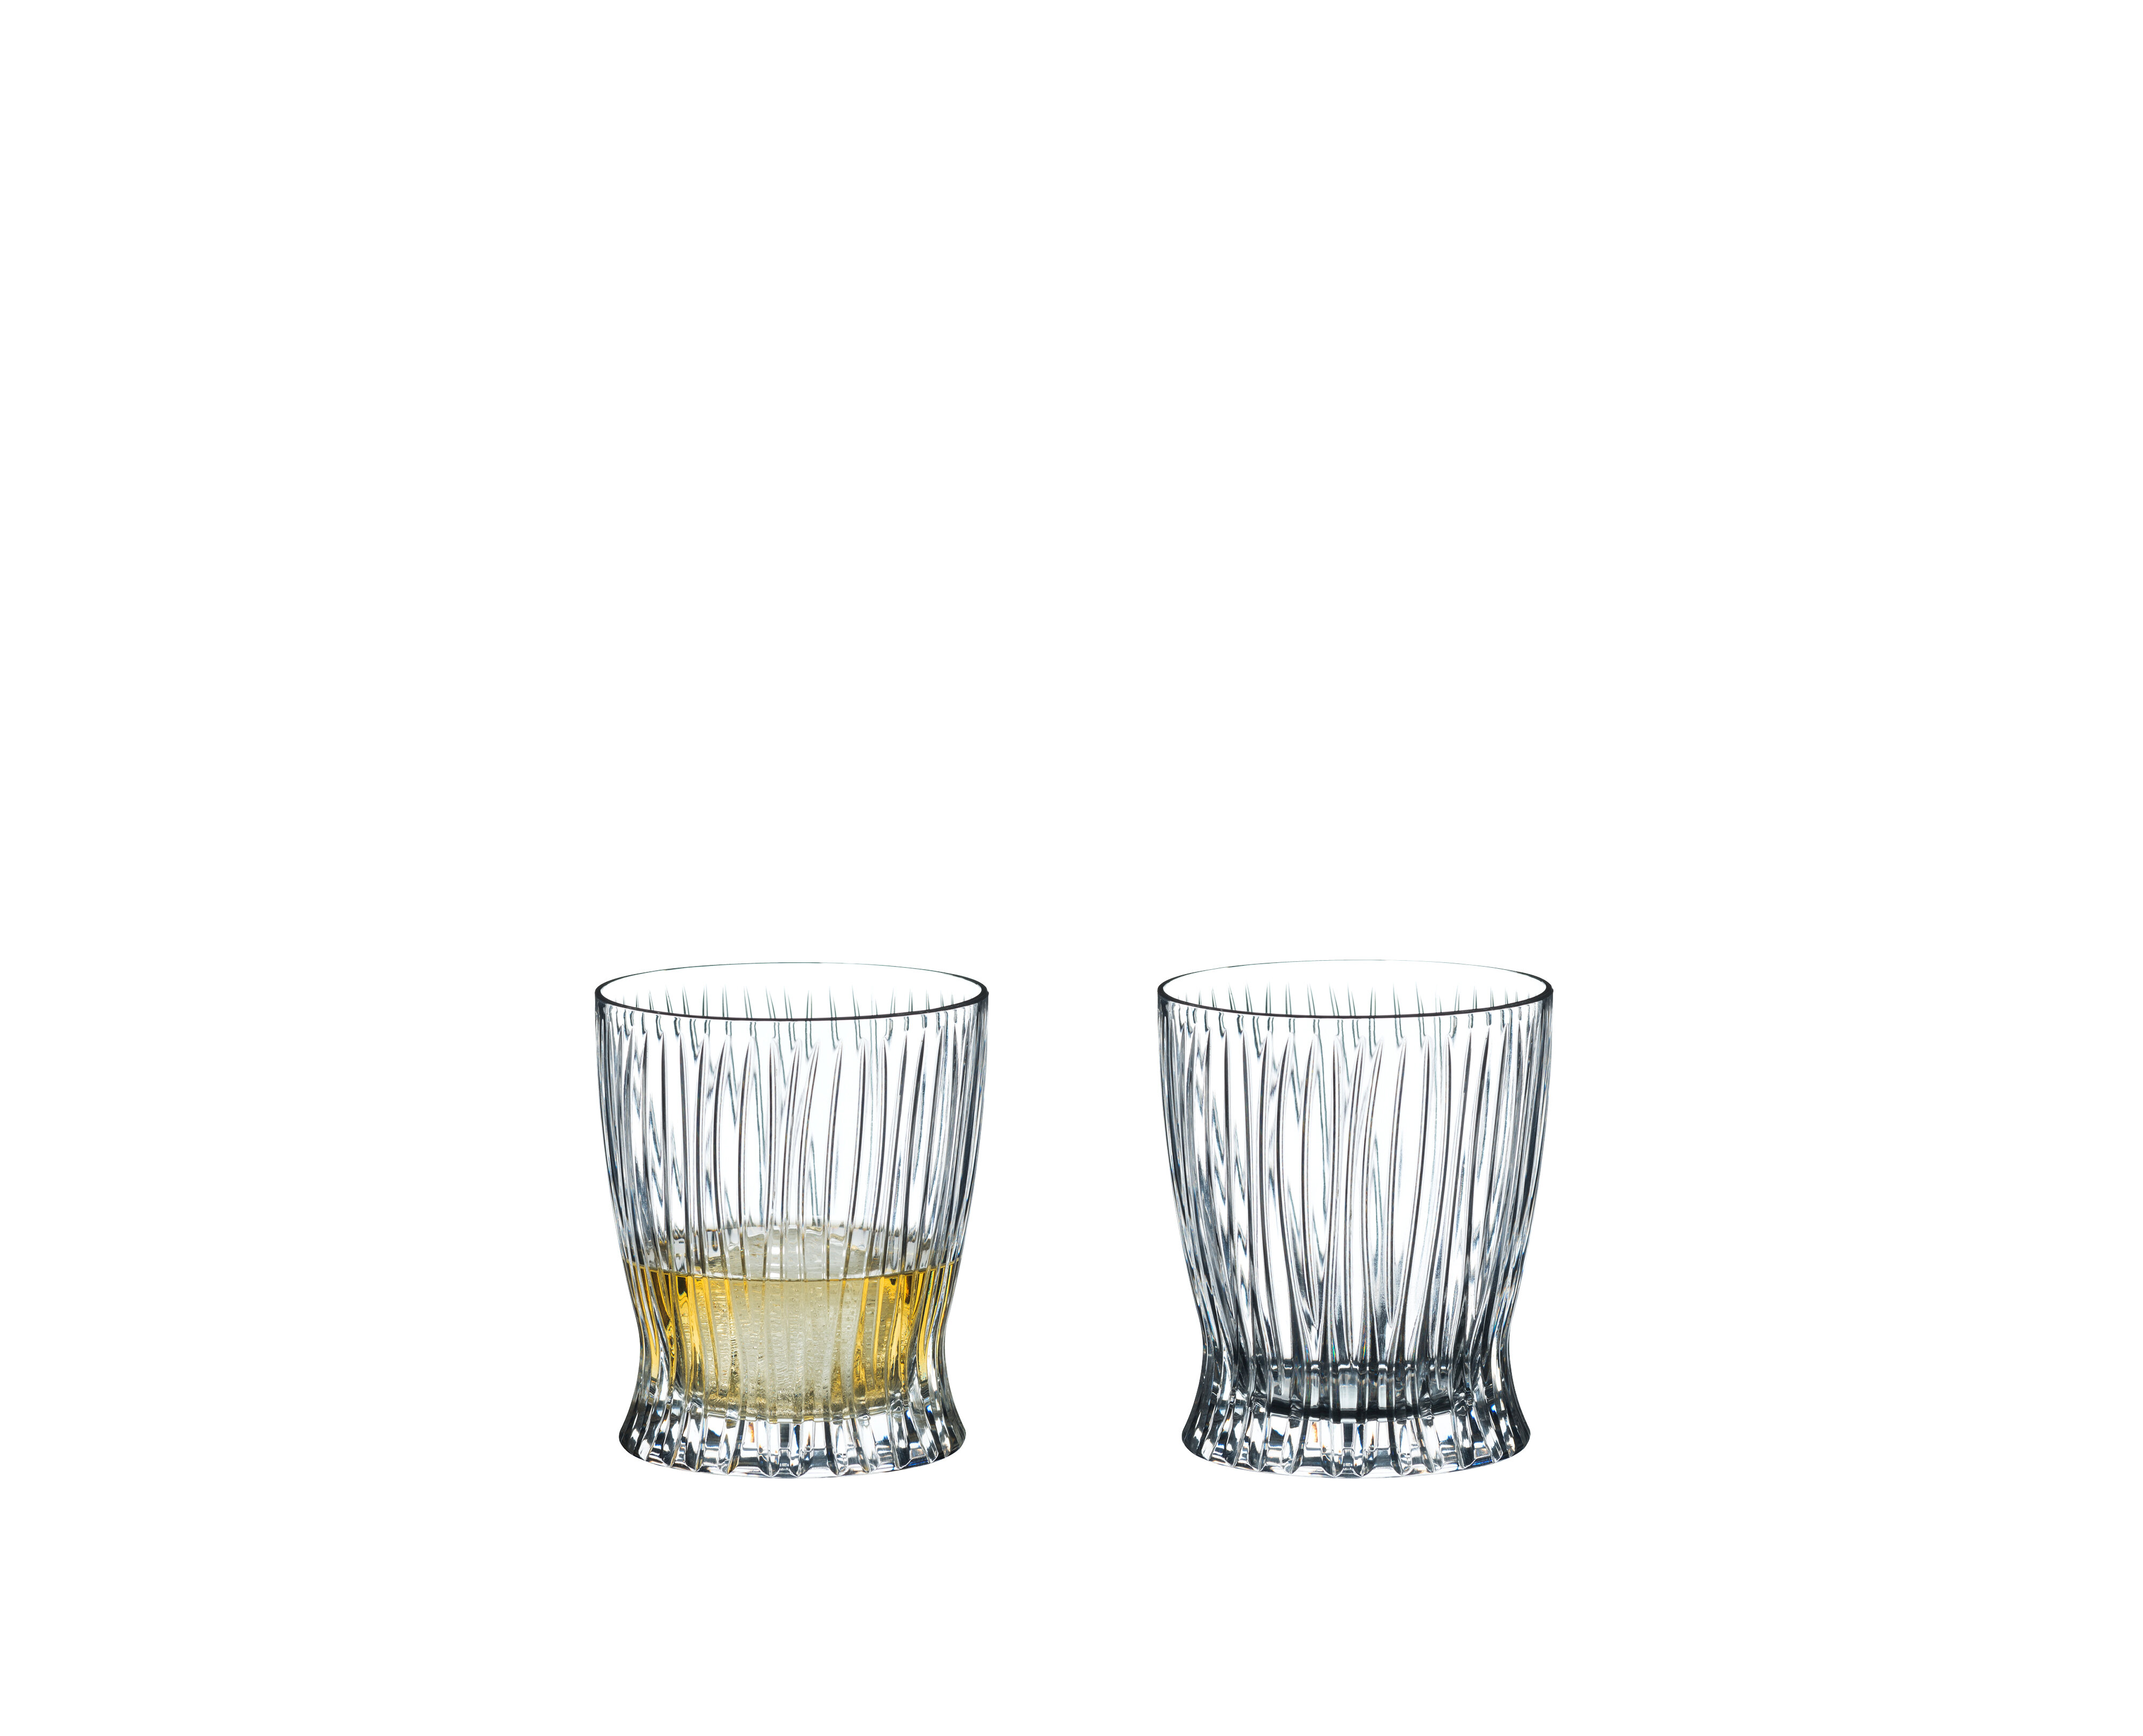 Glassware Drinking Glasses Set Of 4 Embossed Drinkware Vintage Inspired Pressed Glass Tumblers Old Fashioned Glasses Grassy Green Glassware Drinkware Mixed Drinkware Sets